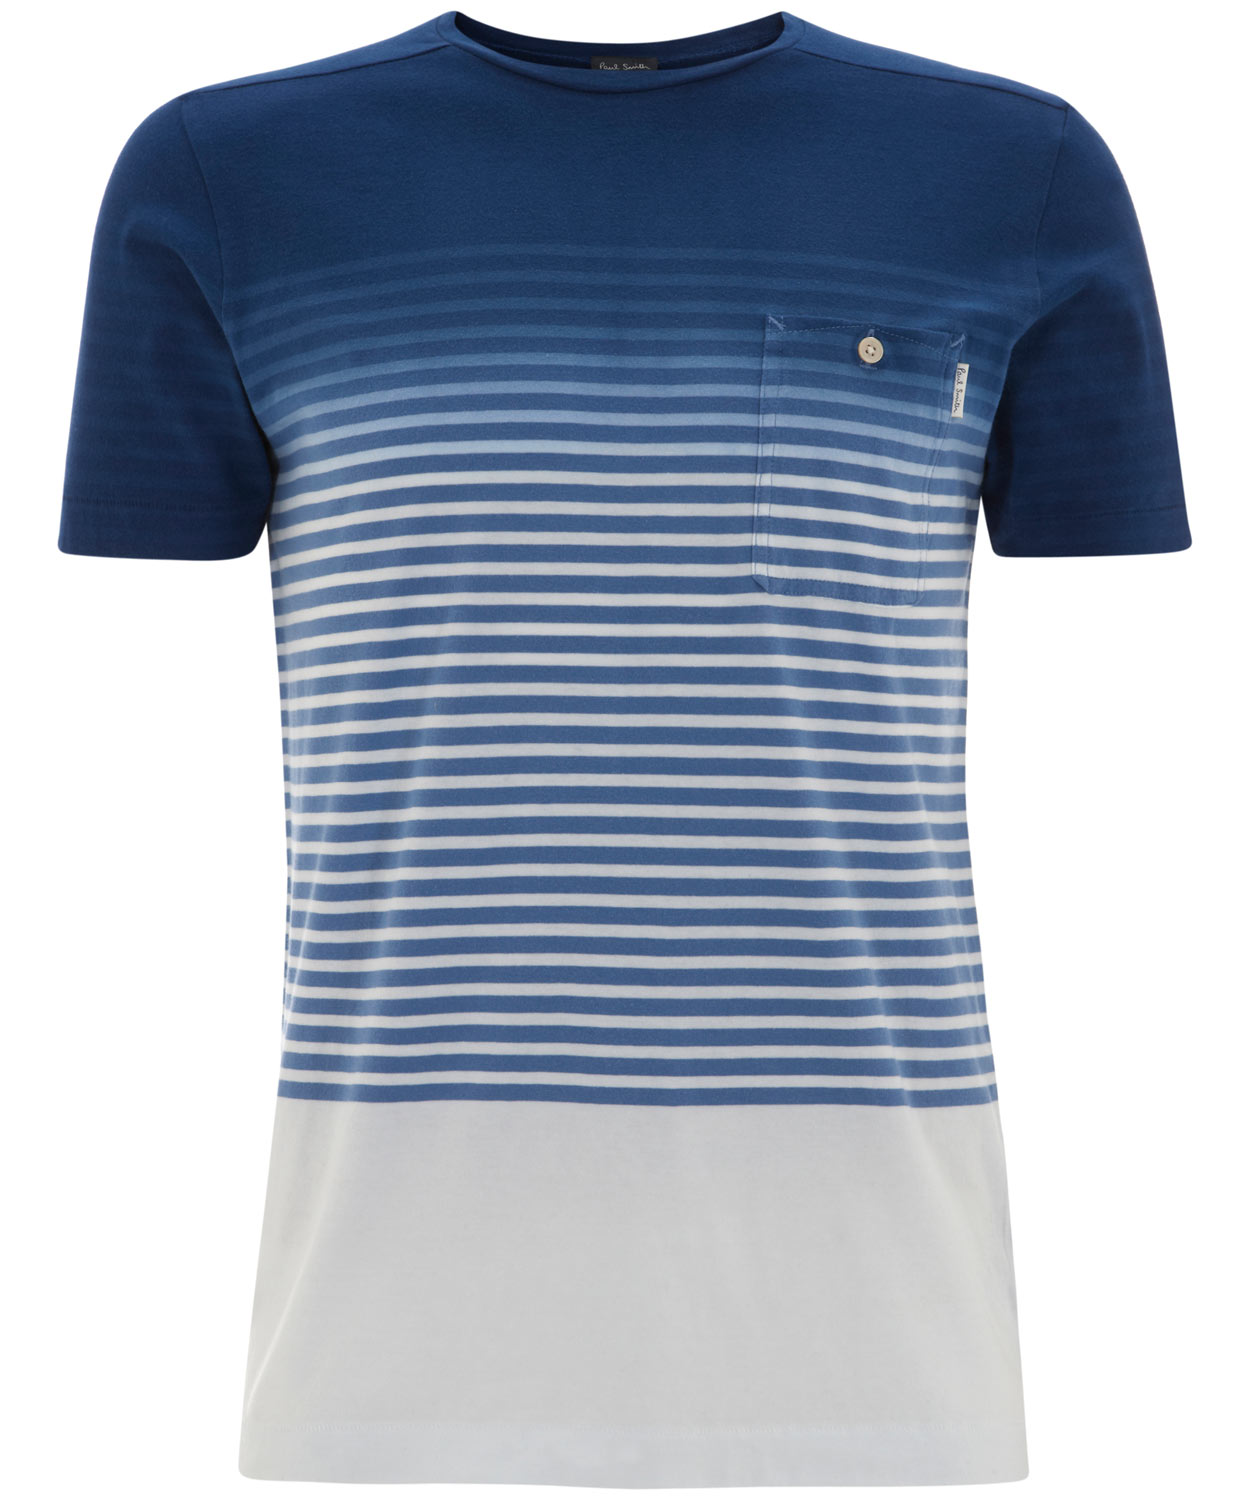 20d290c38561d Paul Smith Dip Dye Stripe T-Shirt in Blue for Men - Lyst